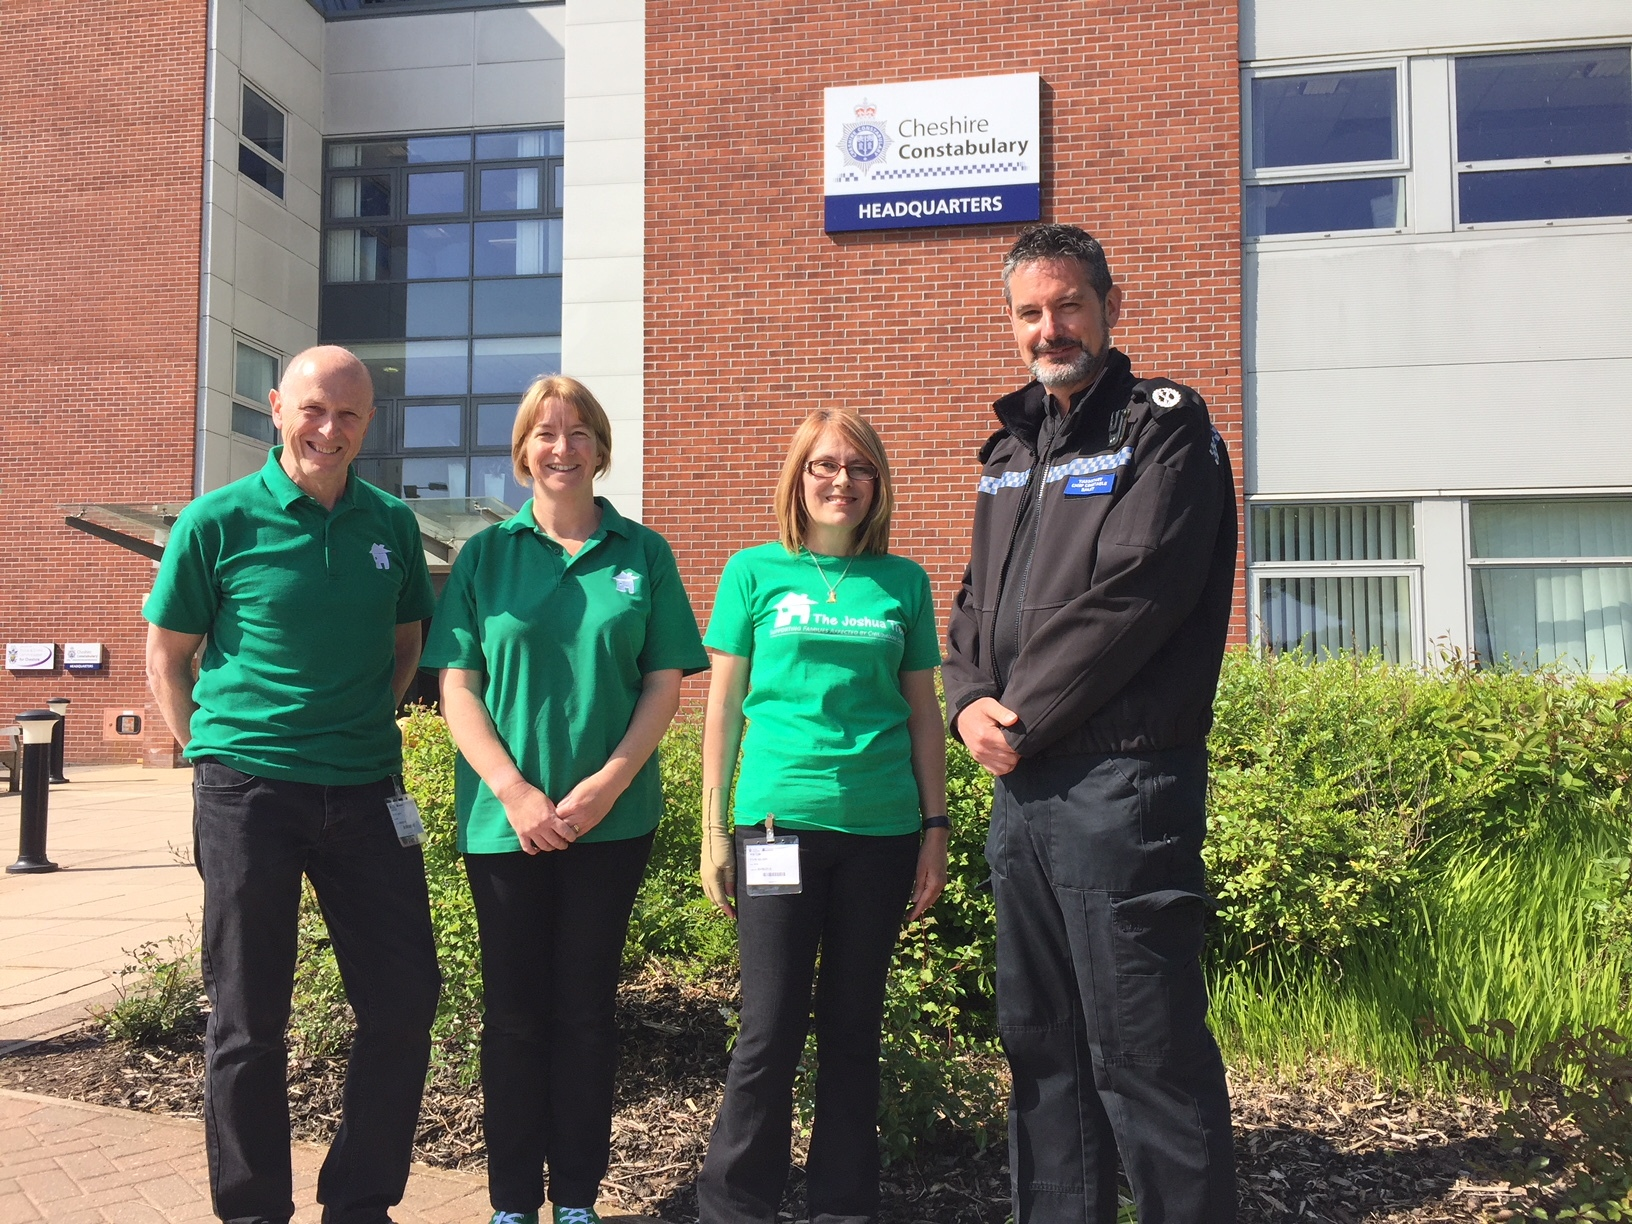 •From left, The Joshua Tree's Business Development Director Pete Smith, Operations Manager Jo Garner and Community Events Co-Ordinator Fran Wilson with Cheshire Constabulary's Assistant Chief Constable Nick Bailey